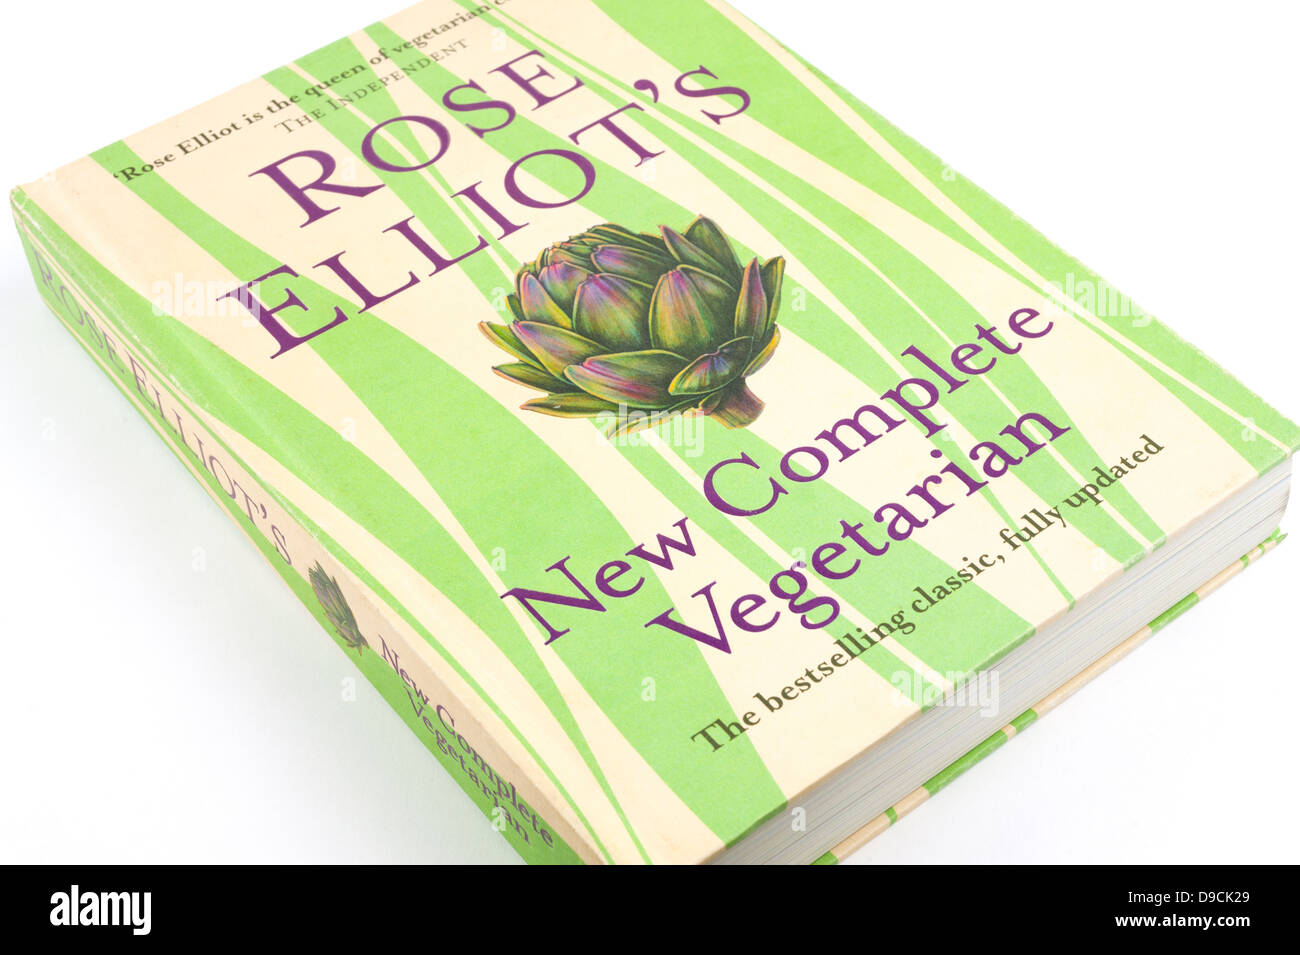 Rose Elliot's 'New Complete Vegetarian' recipe book - Stock Image